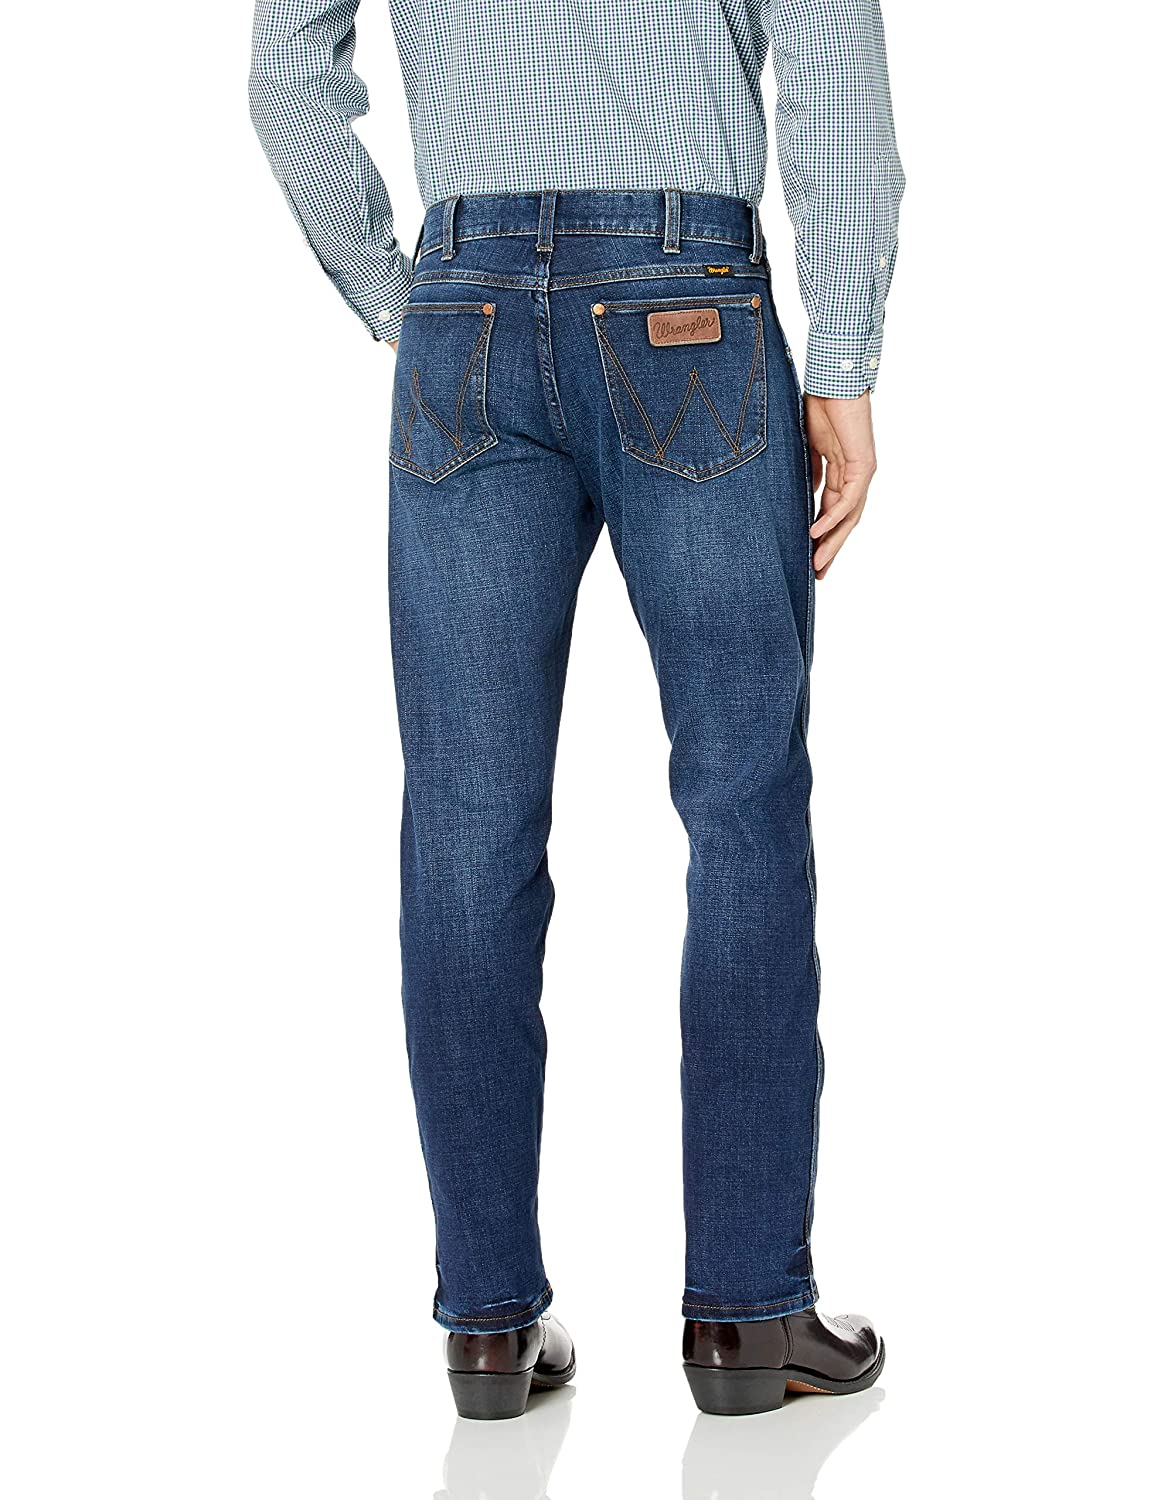 ea9b3087 Wrangler Men's Retro Premium Slim Fit Straight Leg Jean at Amazon Men's  Clothing store: